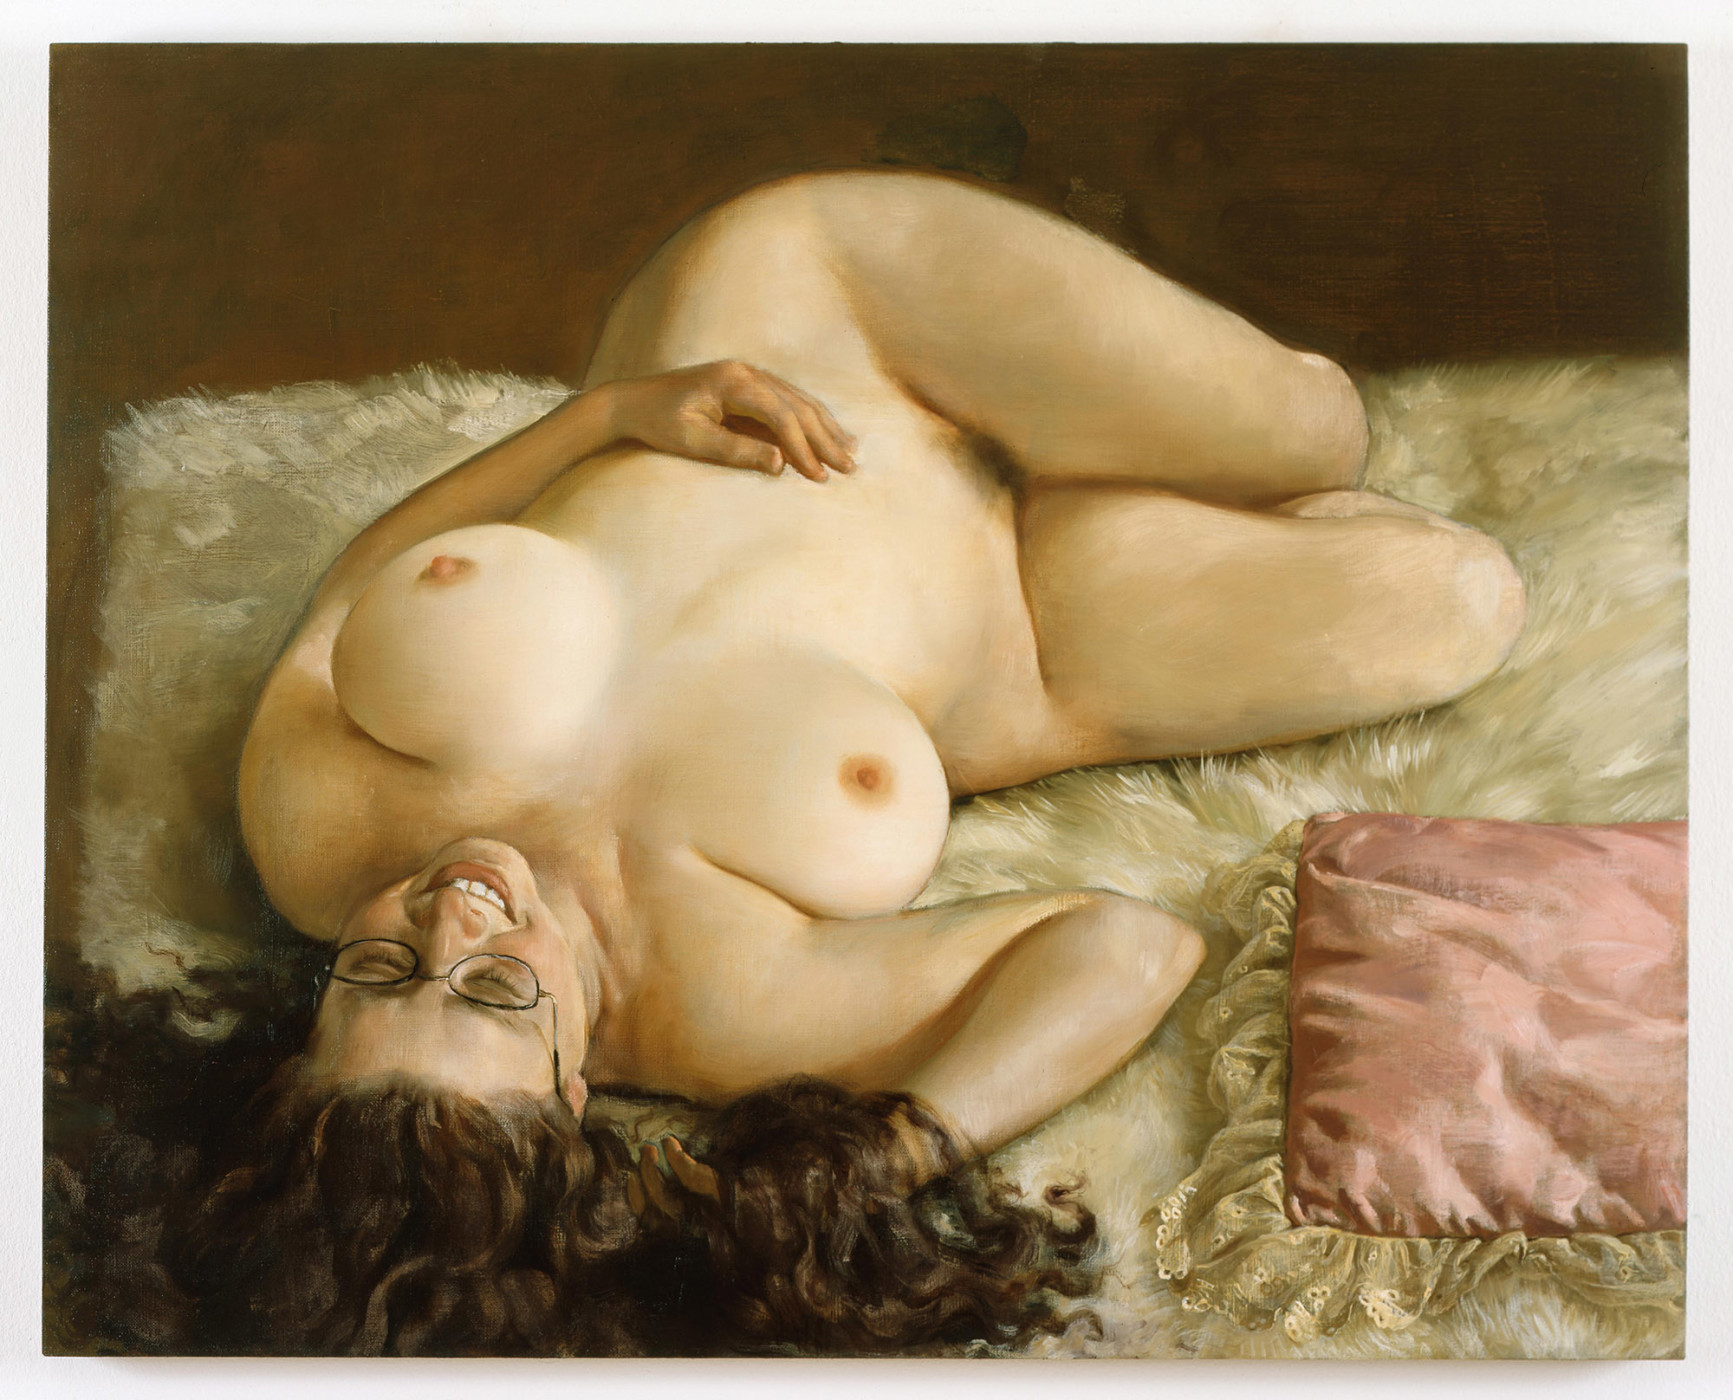 "<div class=""title""><em>Amanda</em>, 2003</div><div class=""medium"">oil on canvas</div><div class=""dimensions"">81.28 x 102.87 cm<br />32 x 40 1/2 in.</div>"